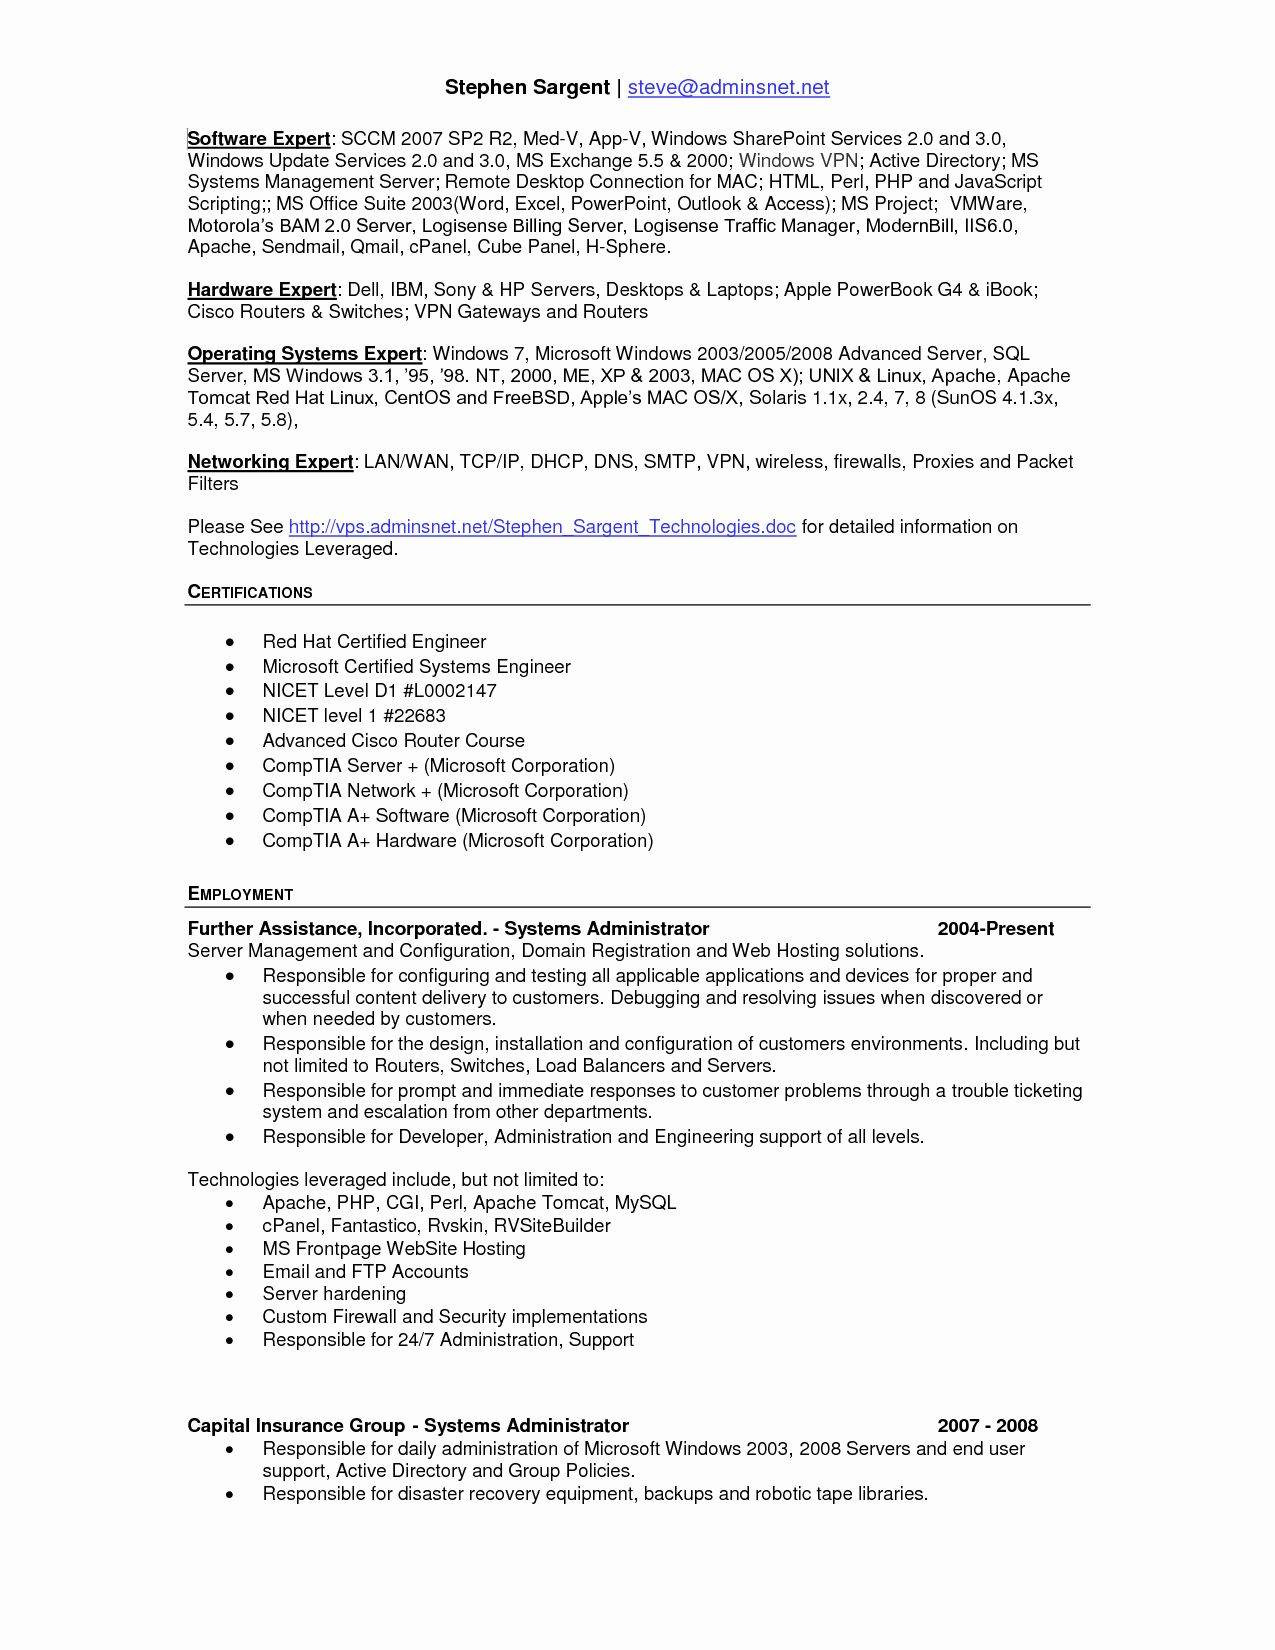 free resume templates for mac unique template in cover letter downloadable os fresh Resume Free Resume Templates Mac Os X